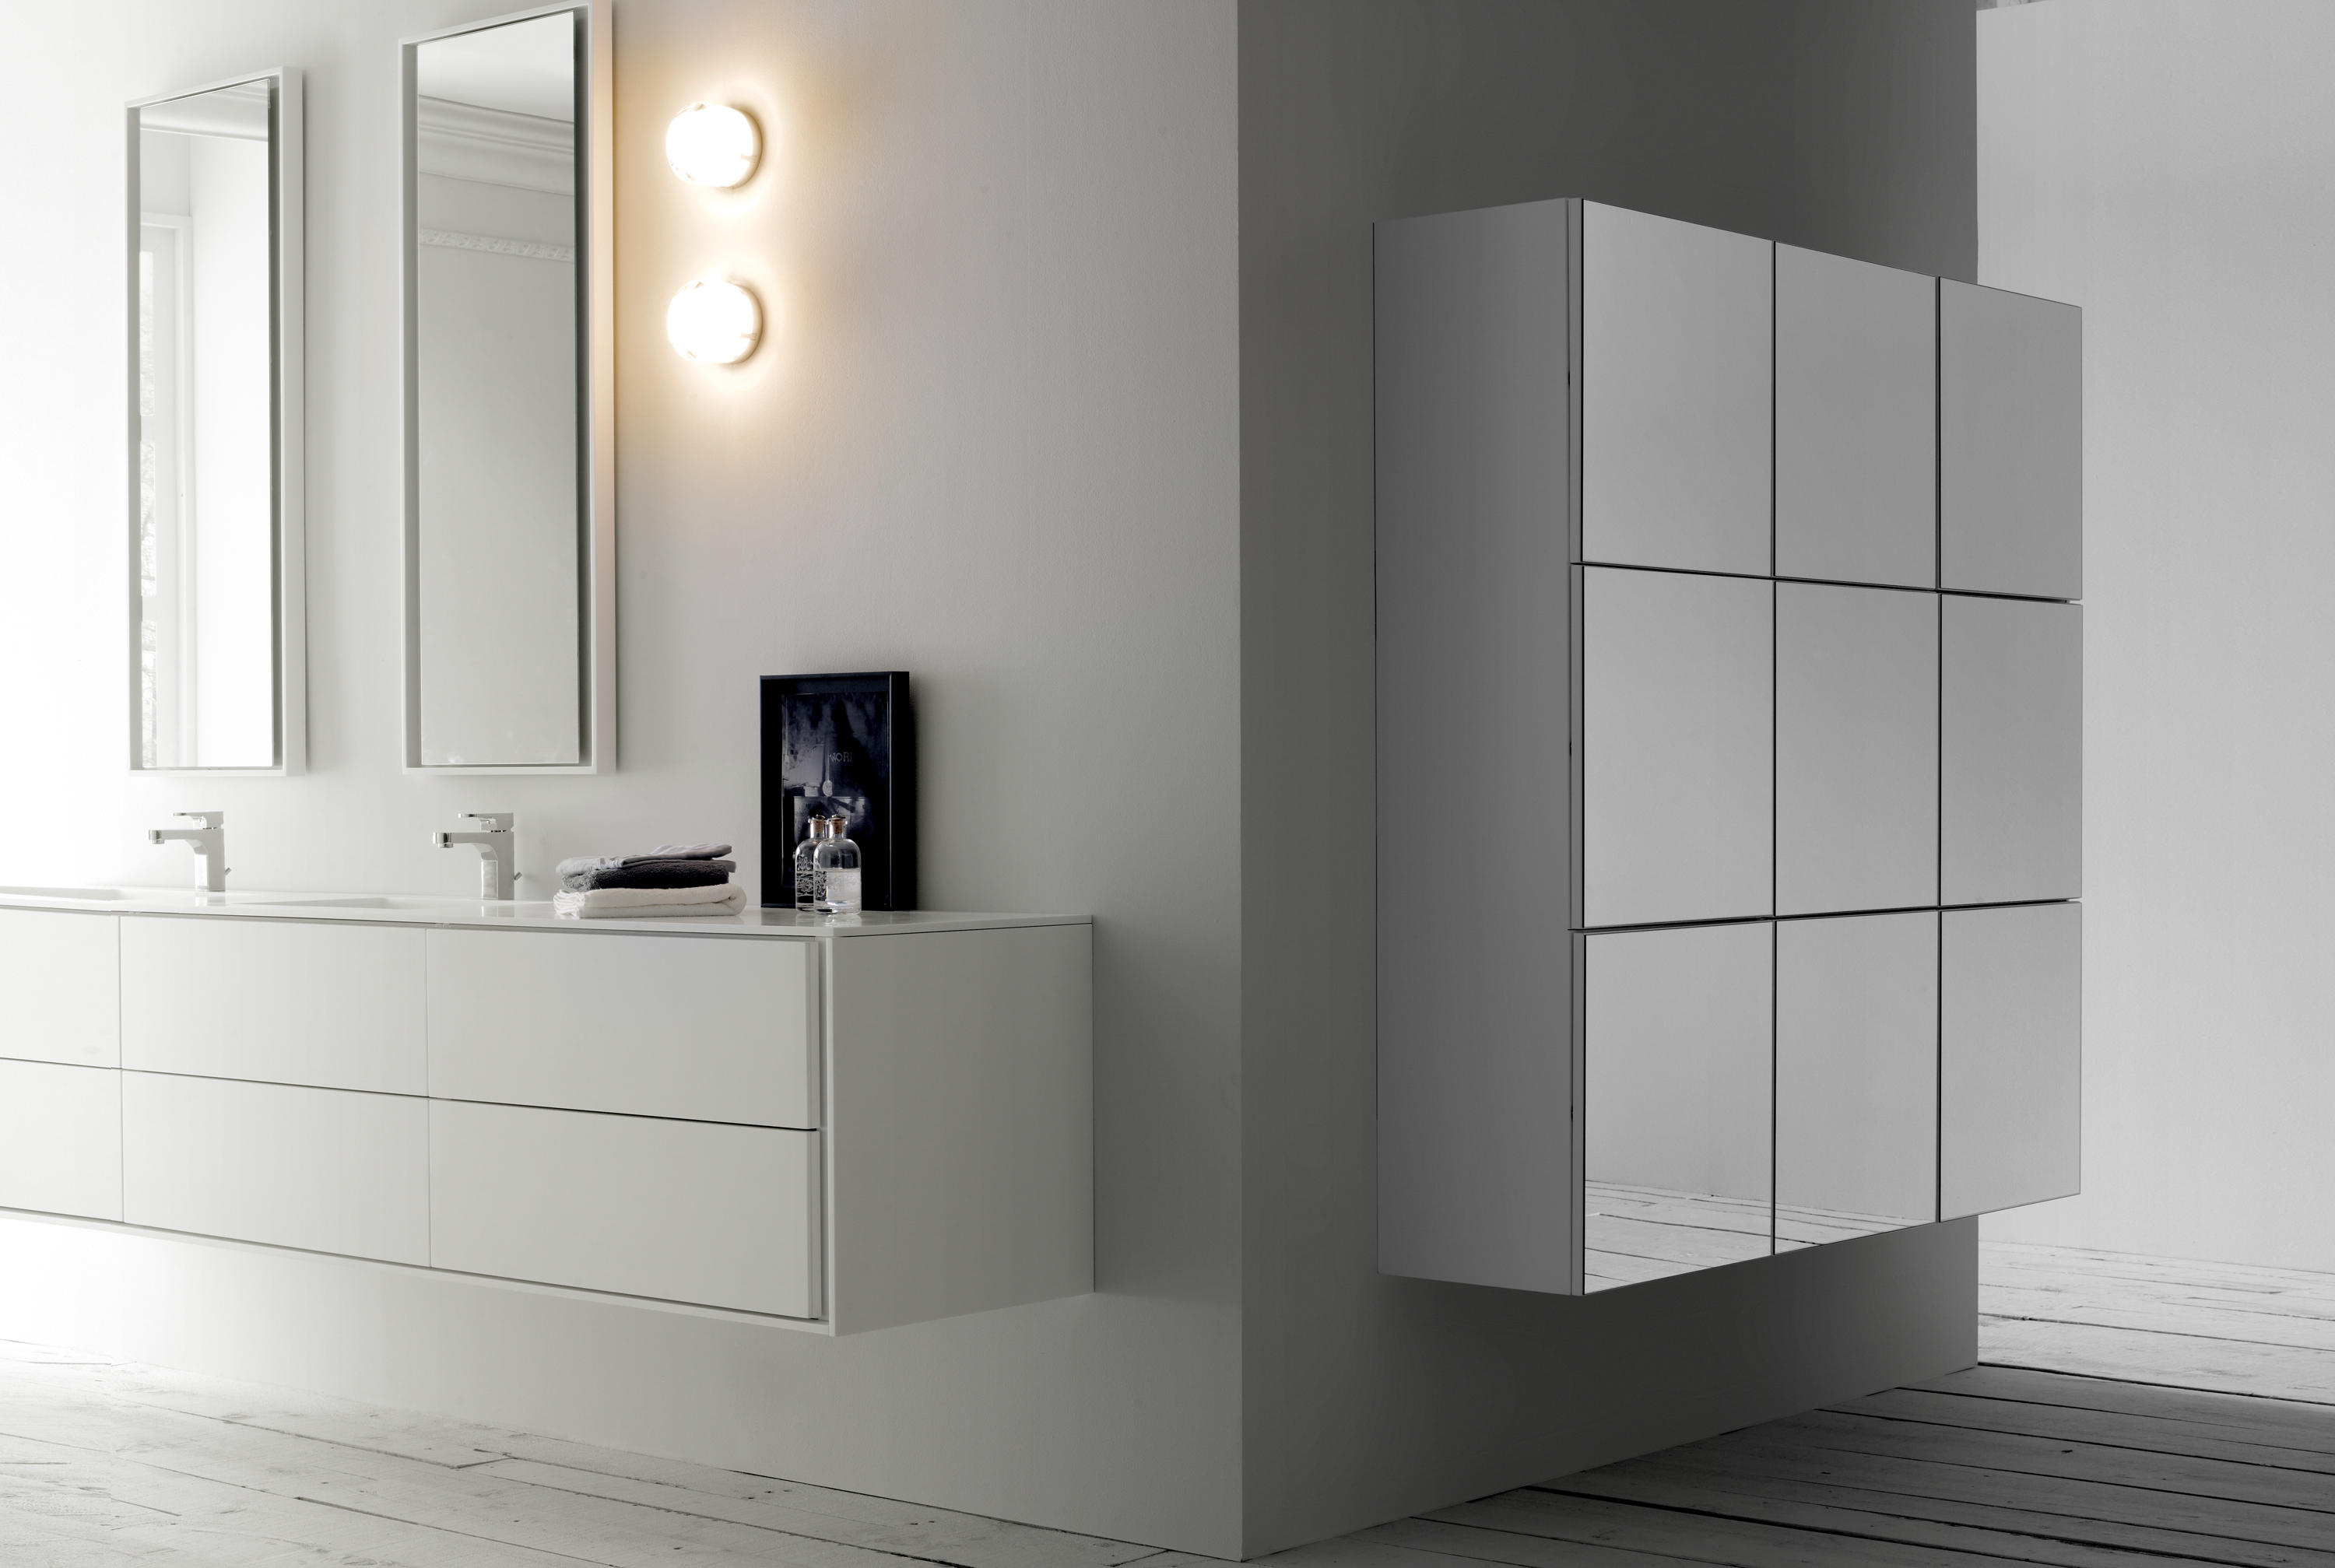 Basic Storage Wall Units Wall Cabinets From Codis Bath Architonic # Muebles Vendrell